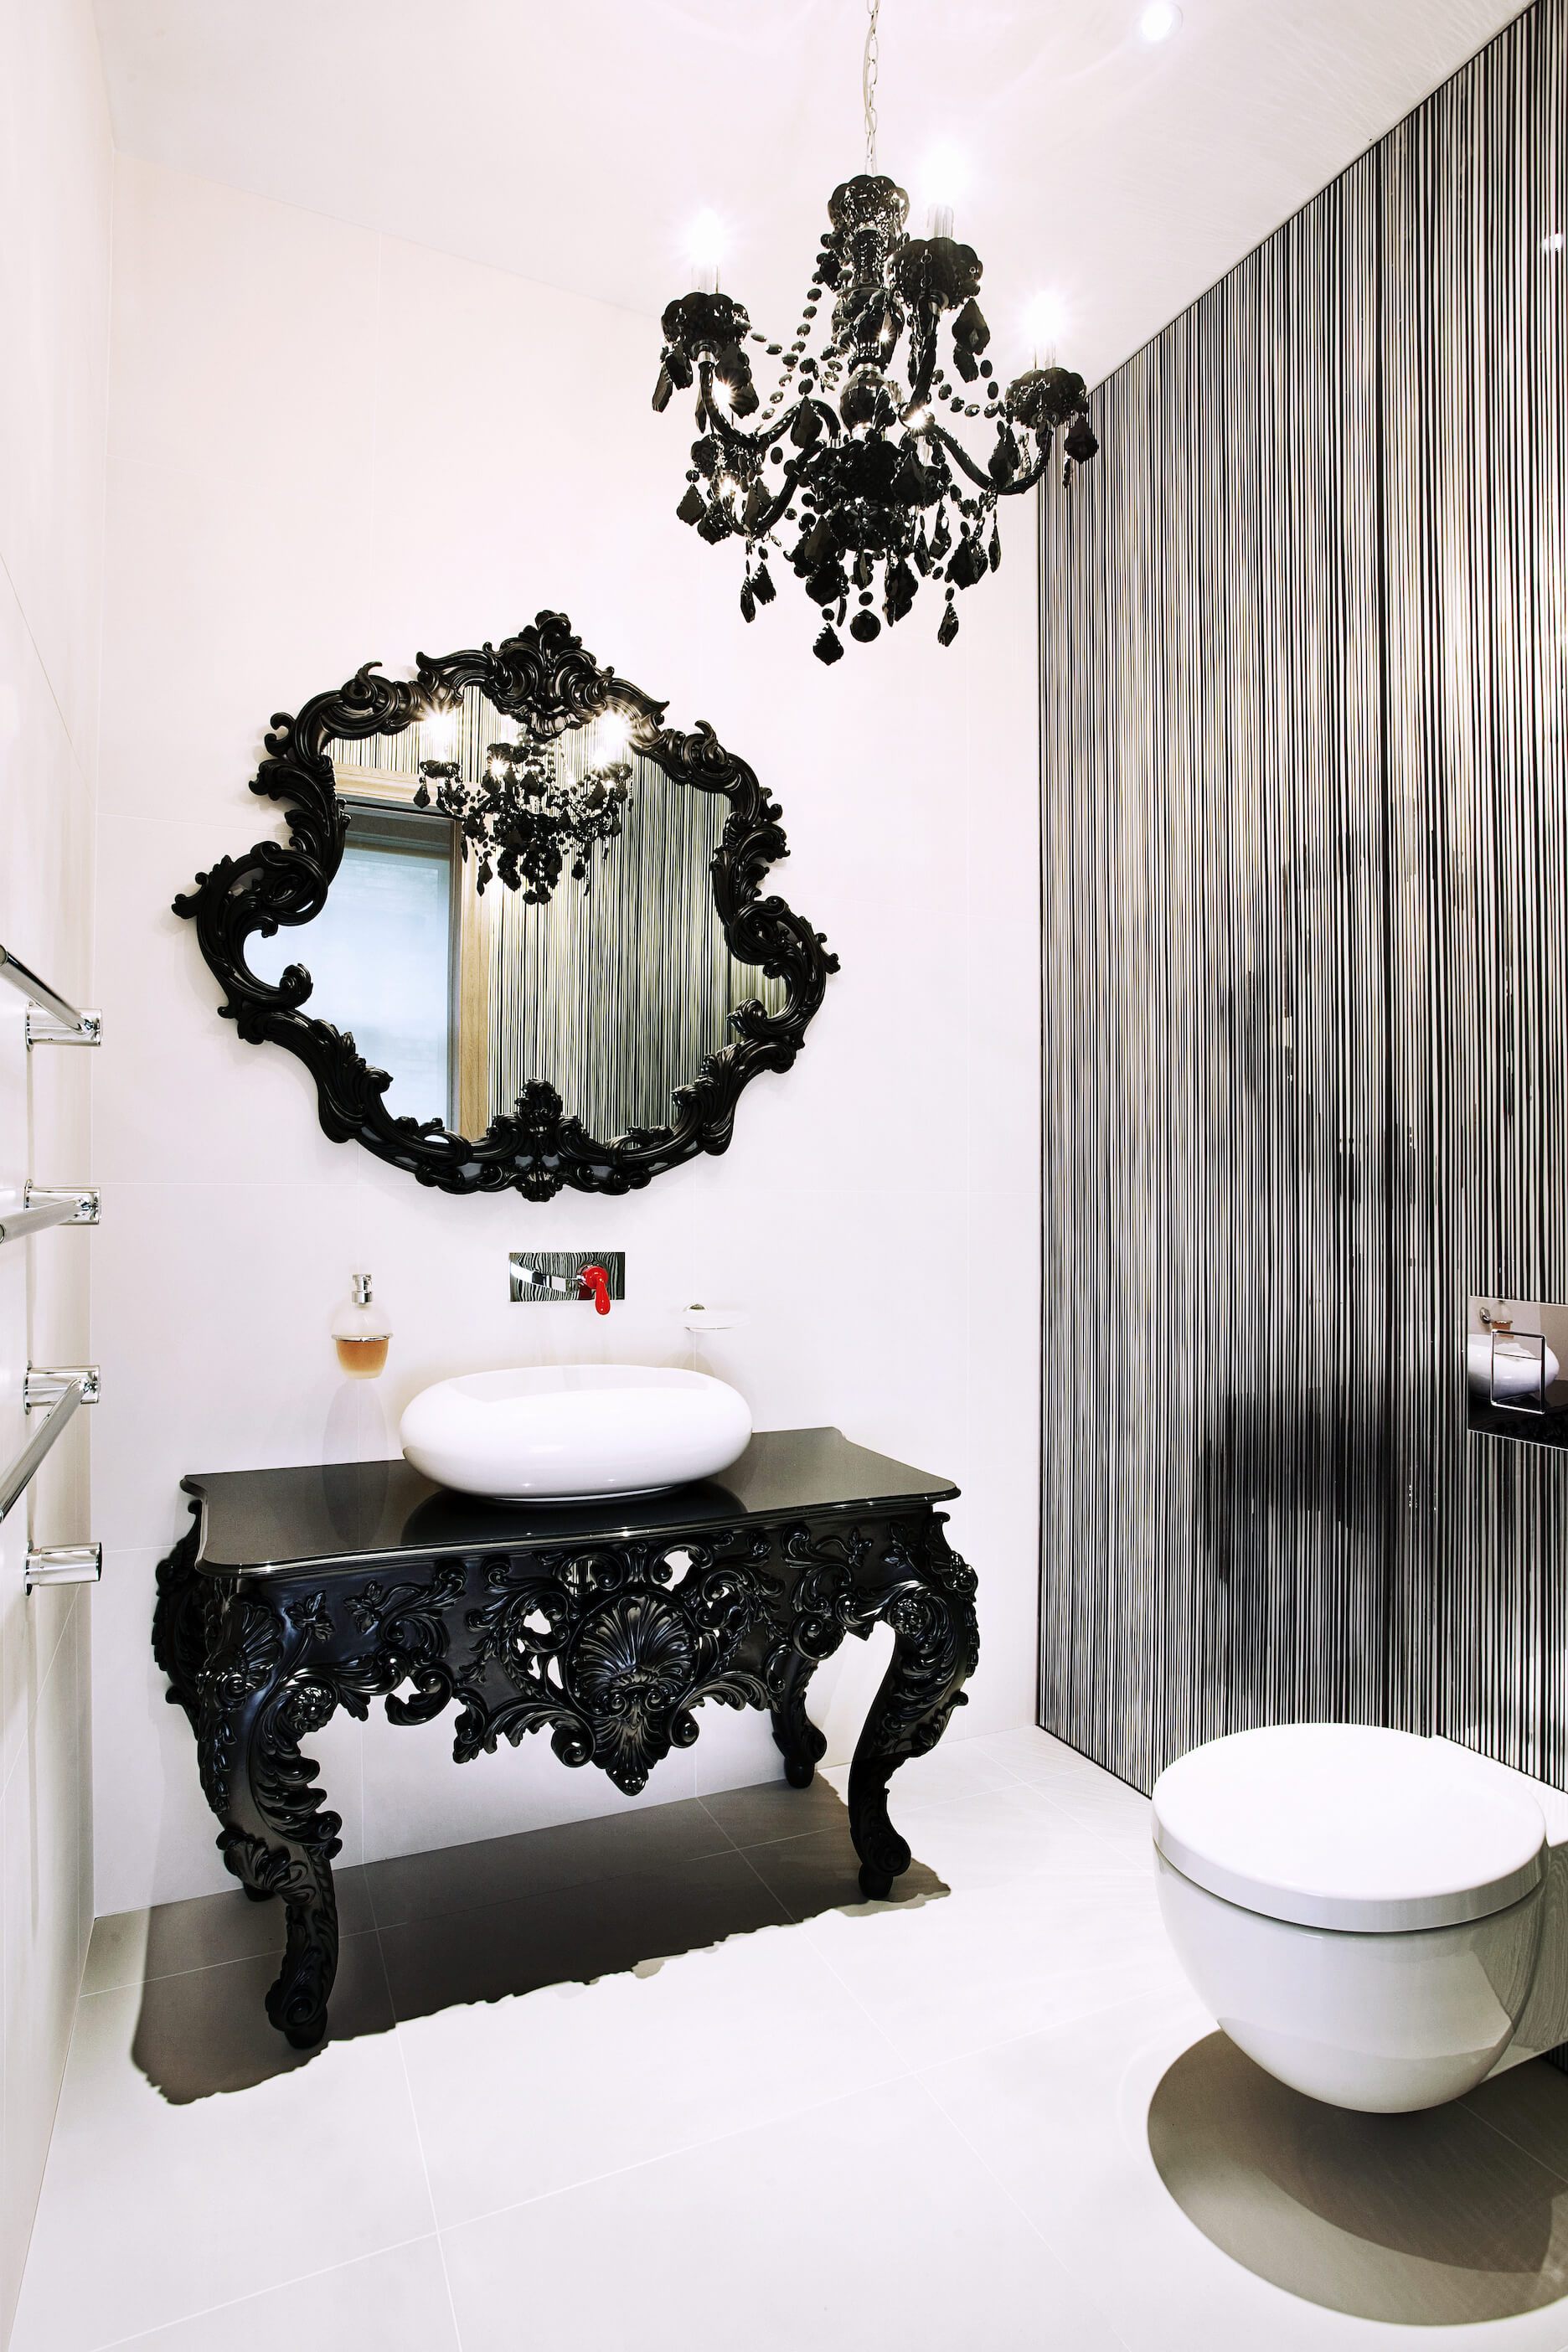 Finally, we have another completely distinct bathroom. This example sports an ornate, traditionally styled table vanity in black with white vessel sink, below a complementary black framed mirror. Silver vertical stripe wall contrasts with white tiling throughout.